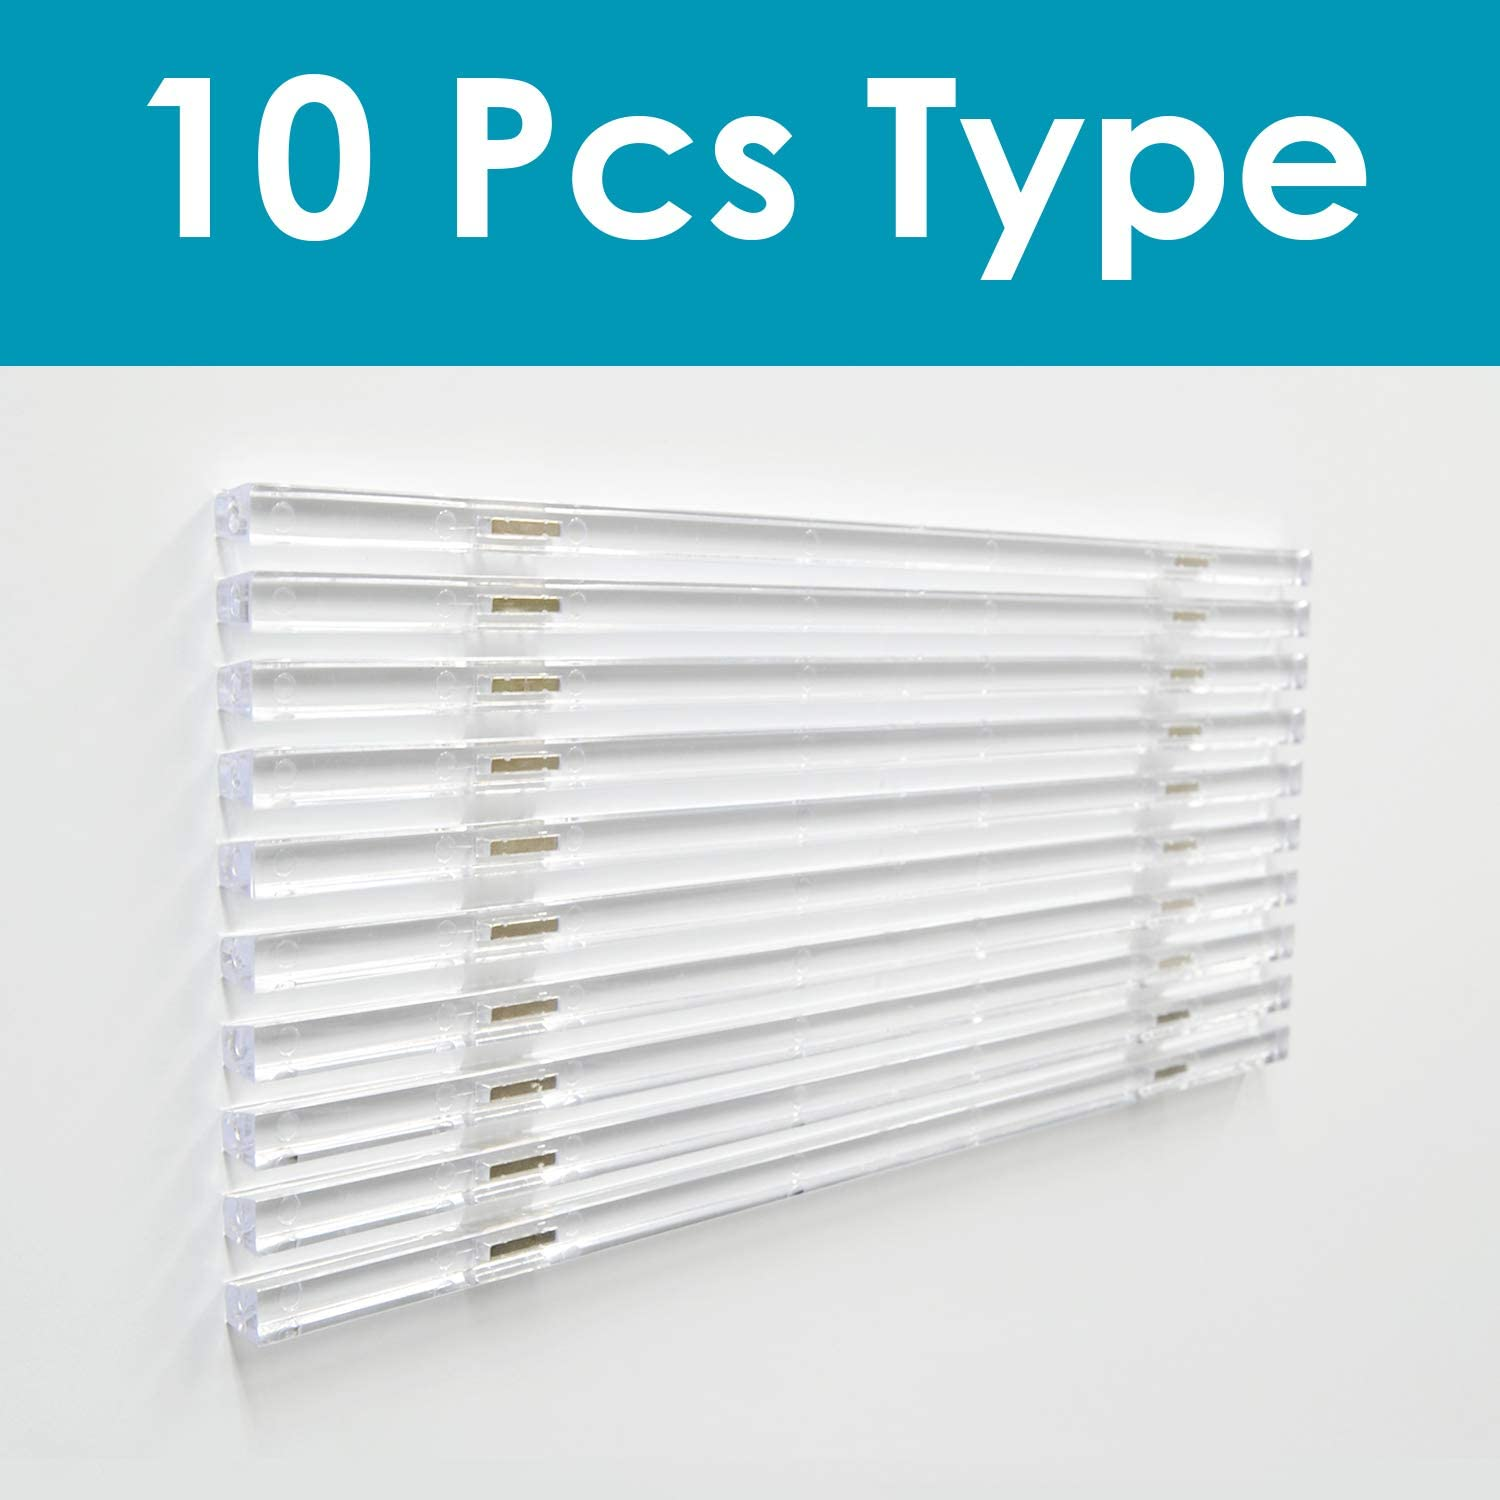 MagX Magnetic Paper Holder Stopper Slim Type Bar (clear) office school supplies 10 pcs type designed by Japan